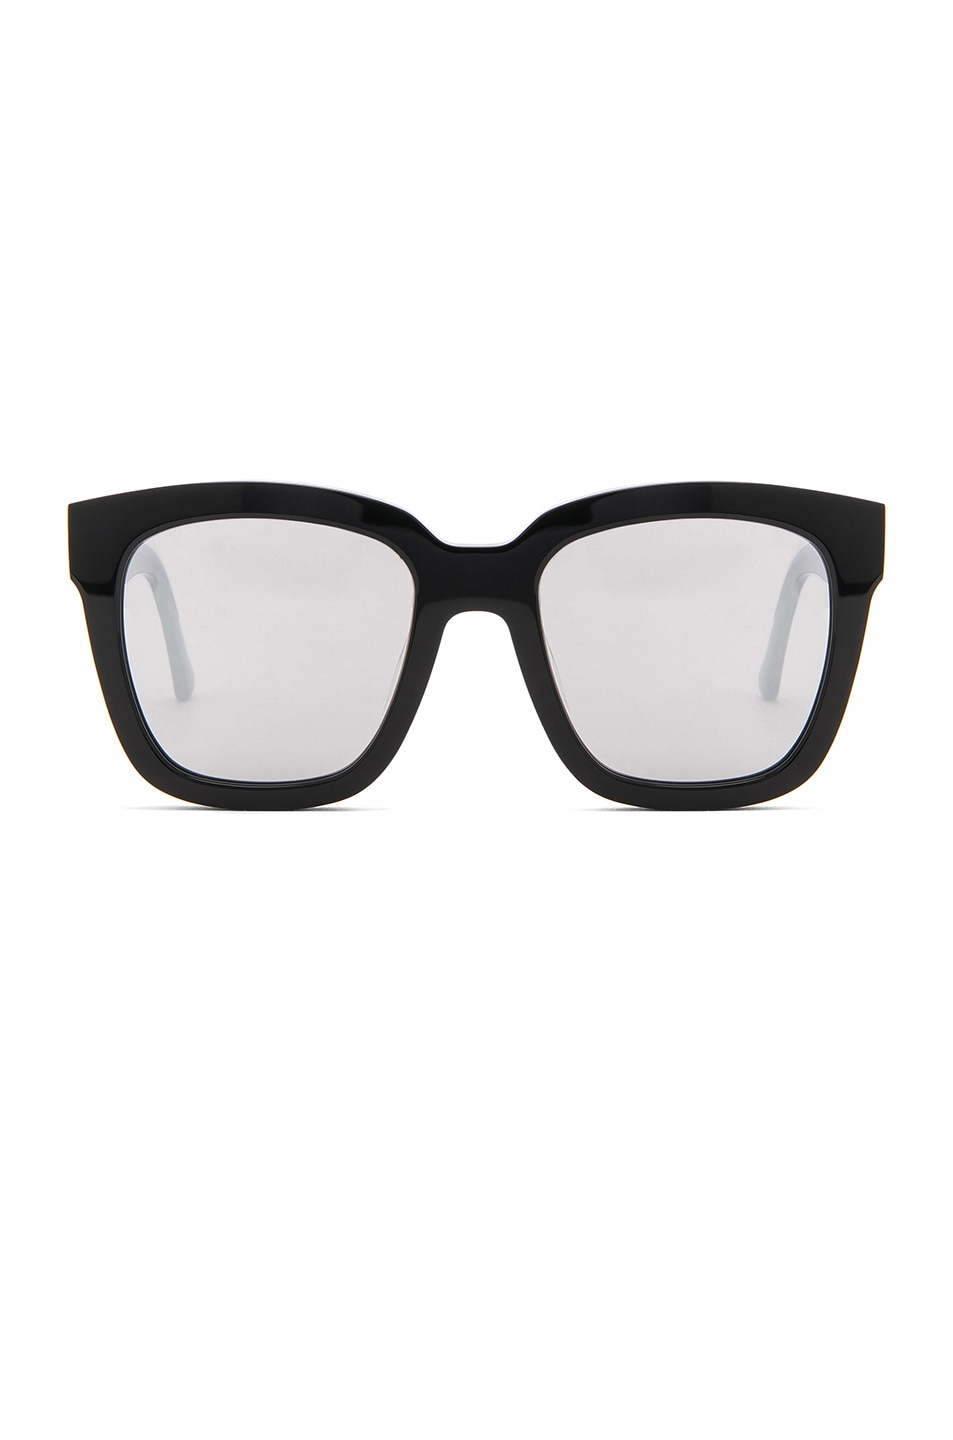 16f4c128b0 Image 1 of Gentle Monster The Dreamer Sunglasses in Black Acetate   Silver  Mirror